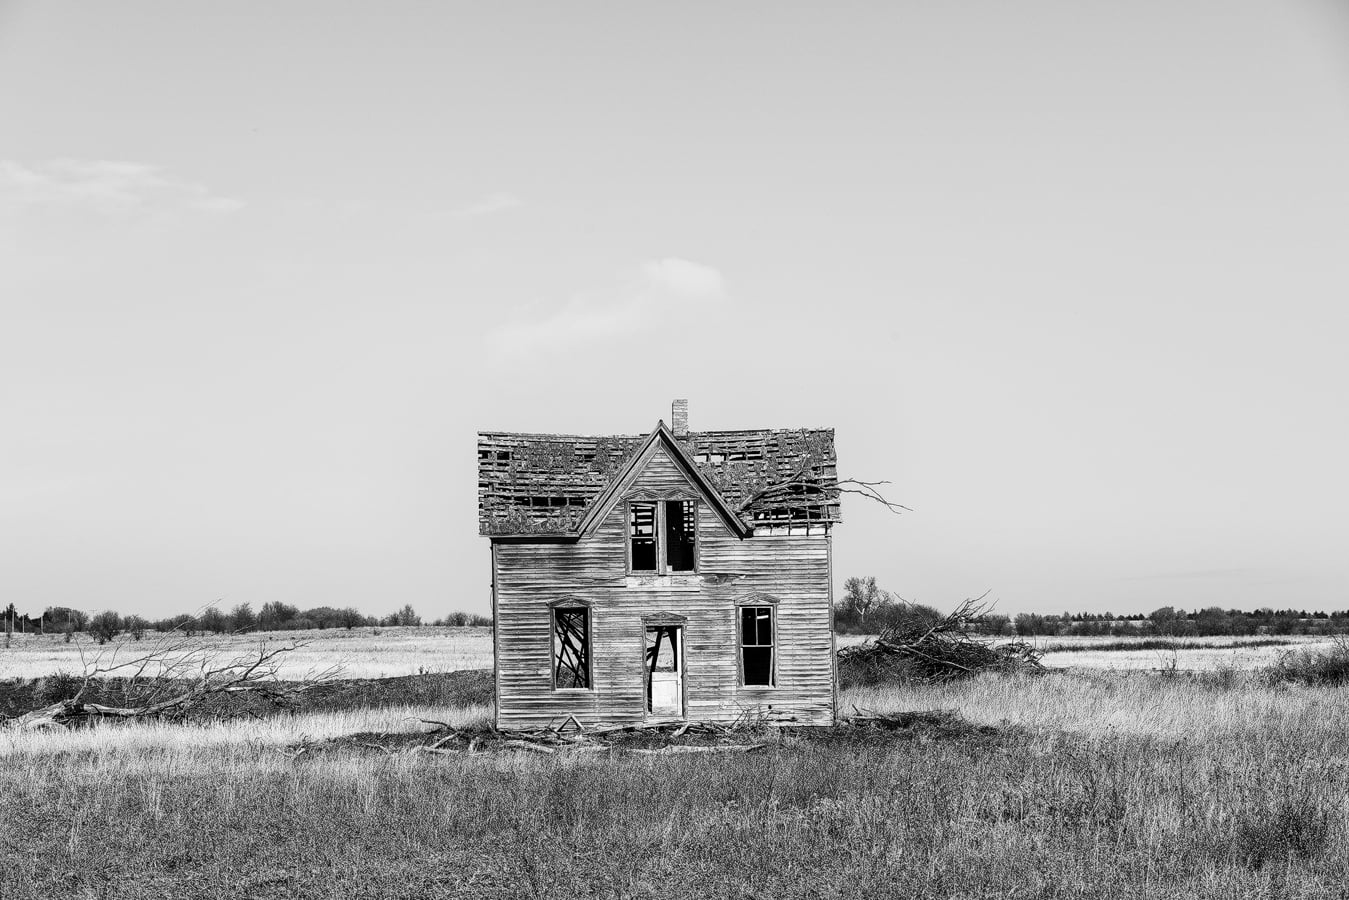 Black and white photograph of an abandoned farm house on the Kansas prairie